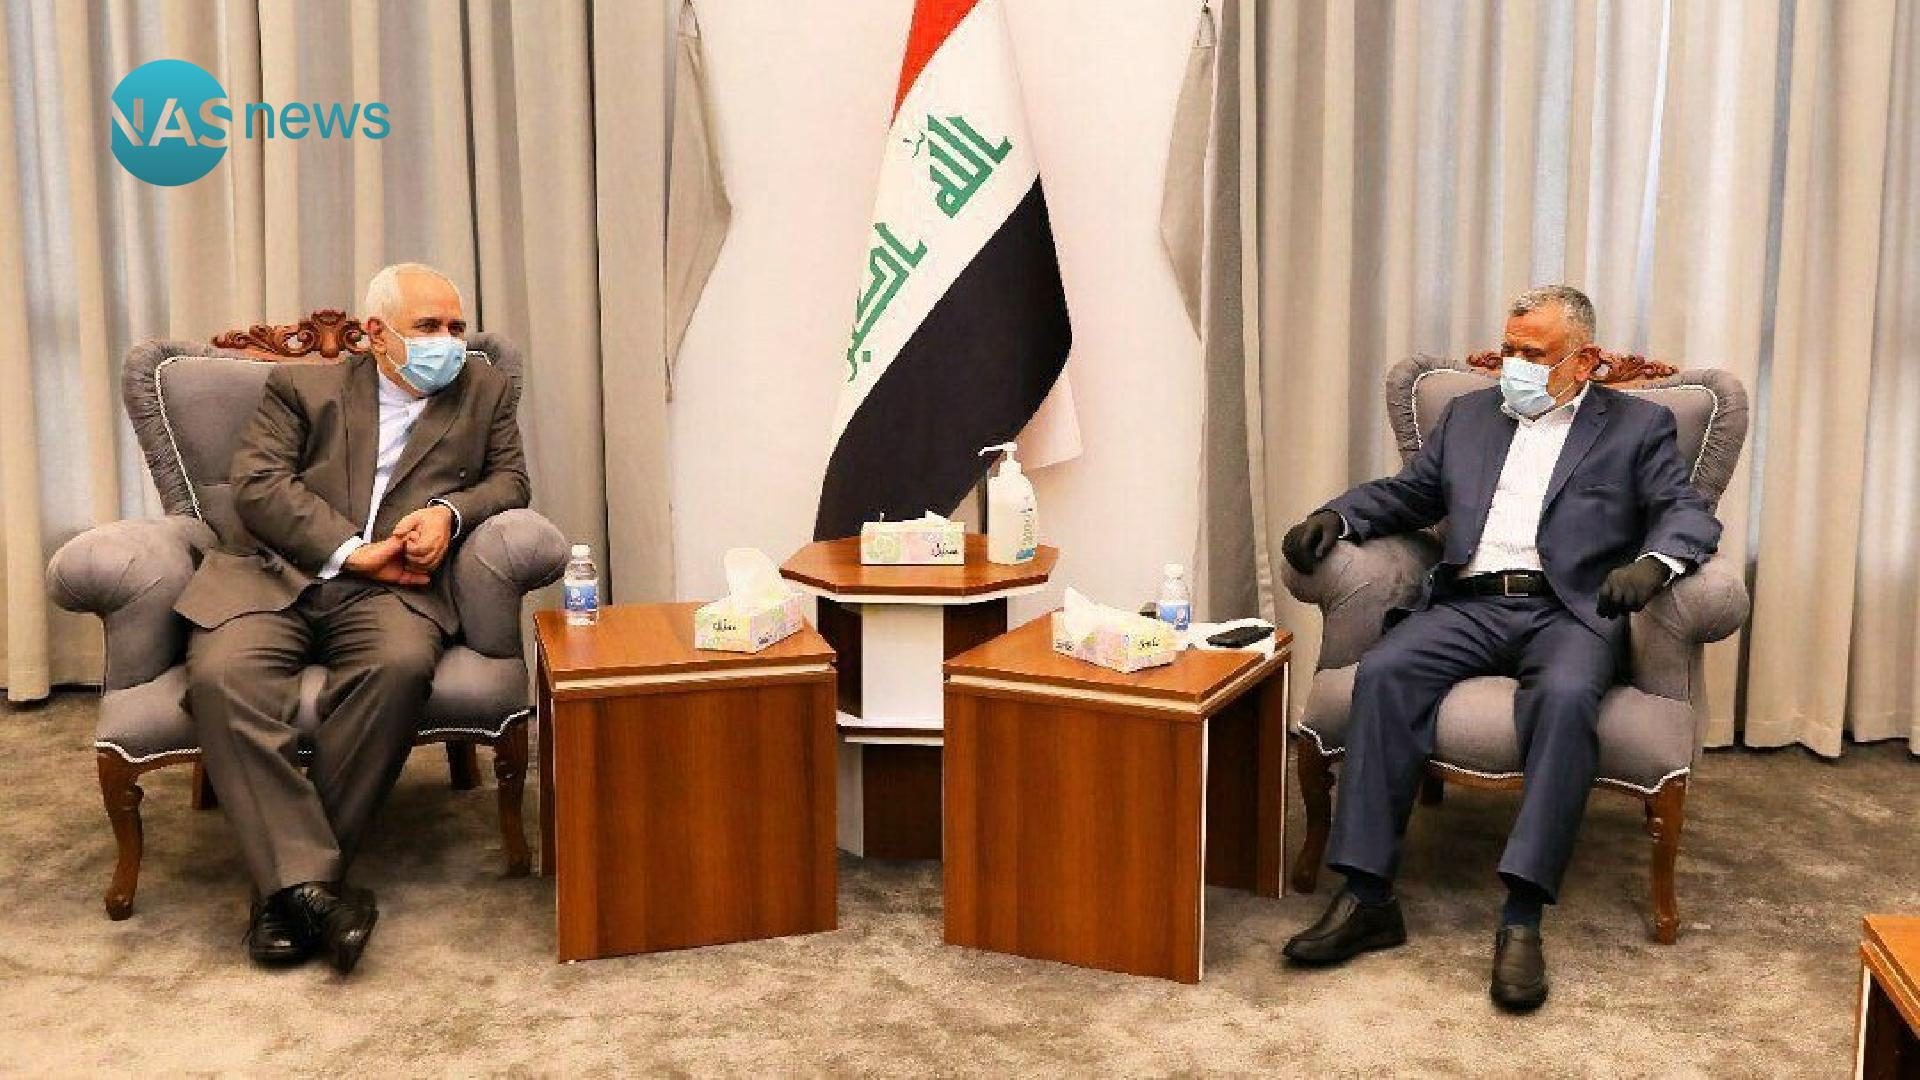 IRANIAN FOREIGN MINISTER VISITS BAGHDAD SUNDAY 965f36730-35798-202007190304